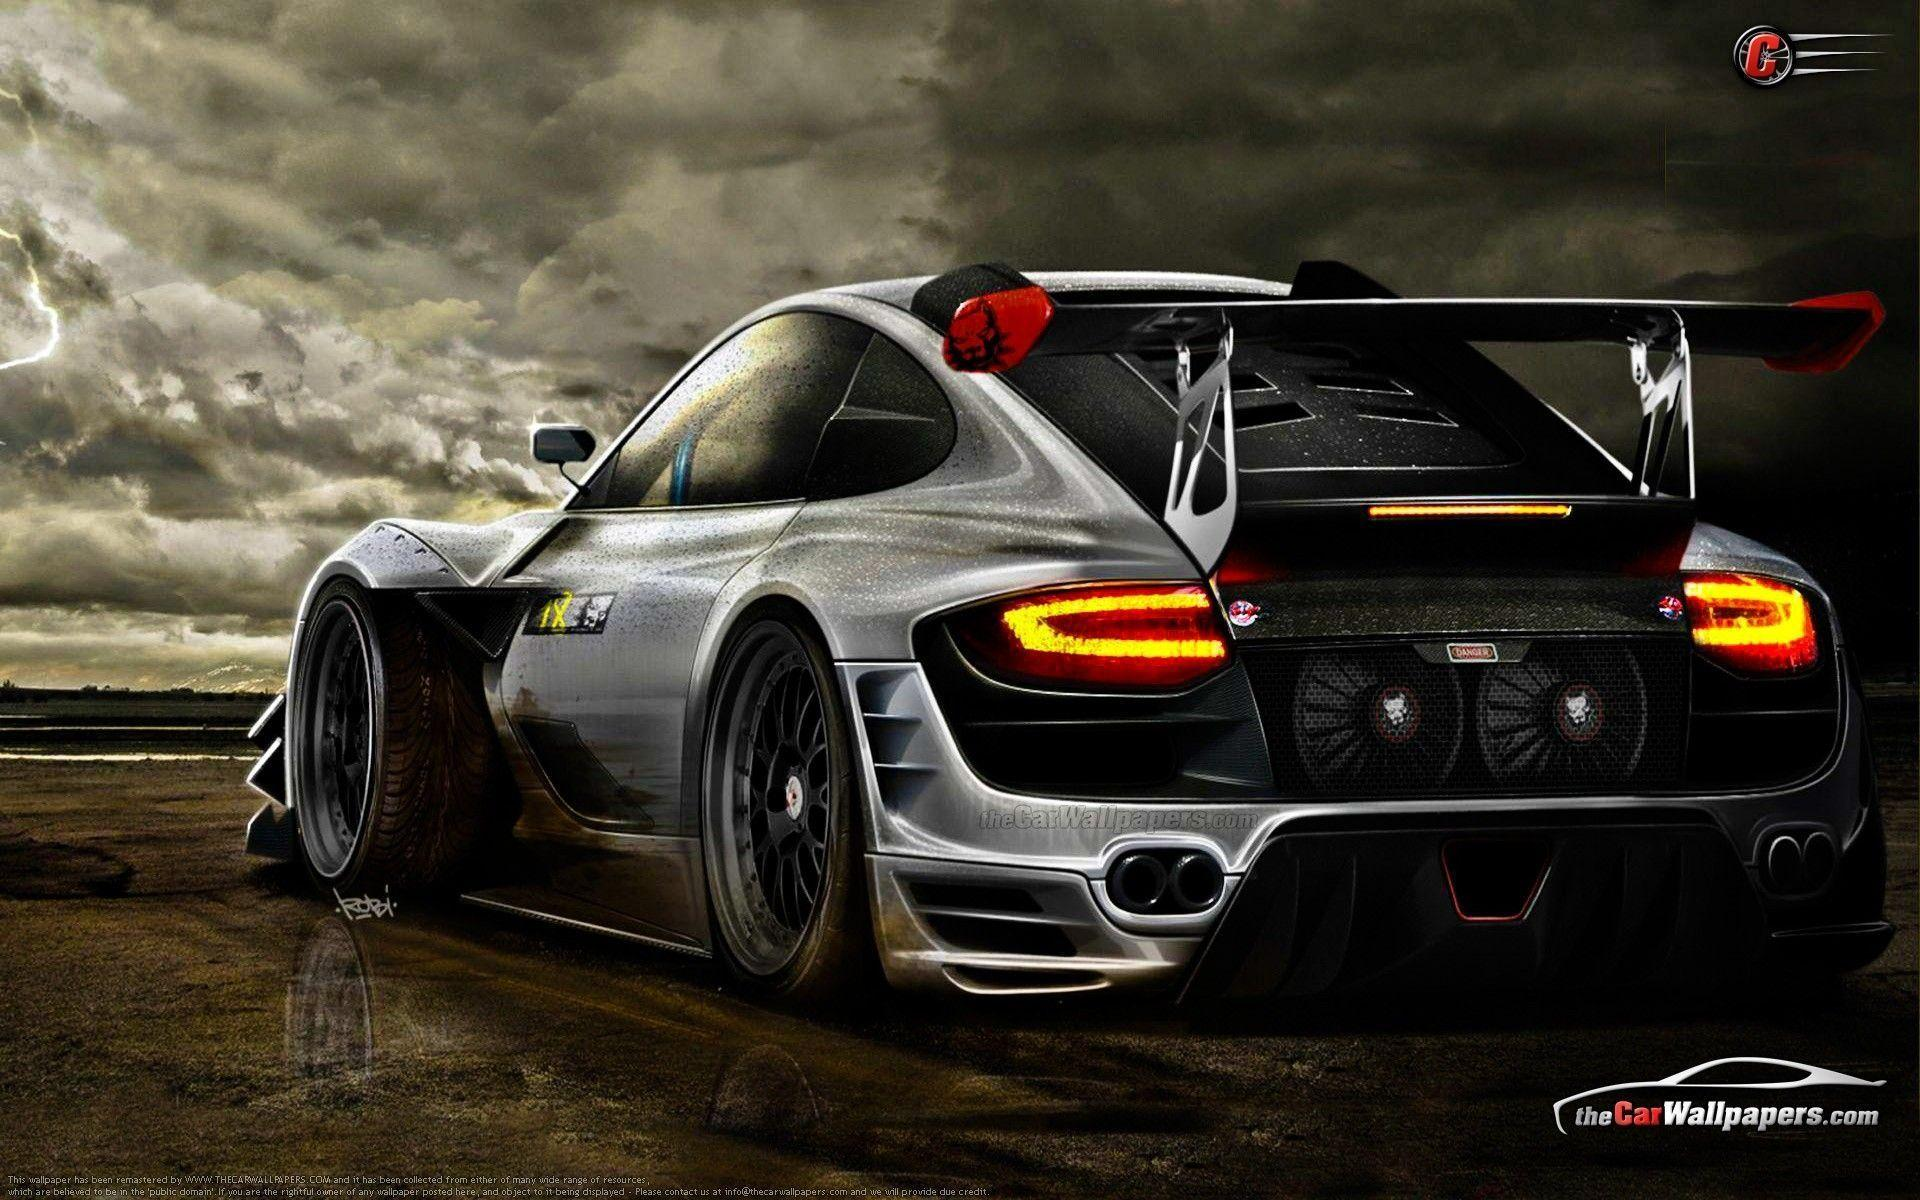 Porshe 911 Carrera 74220 High Definition Wallpapers | Suwall.